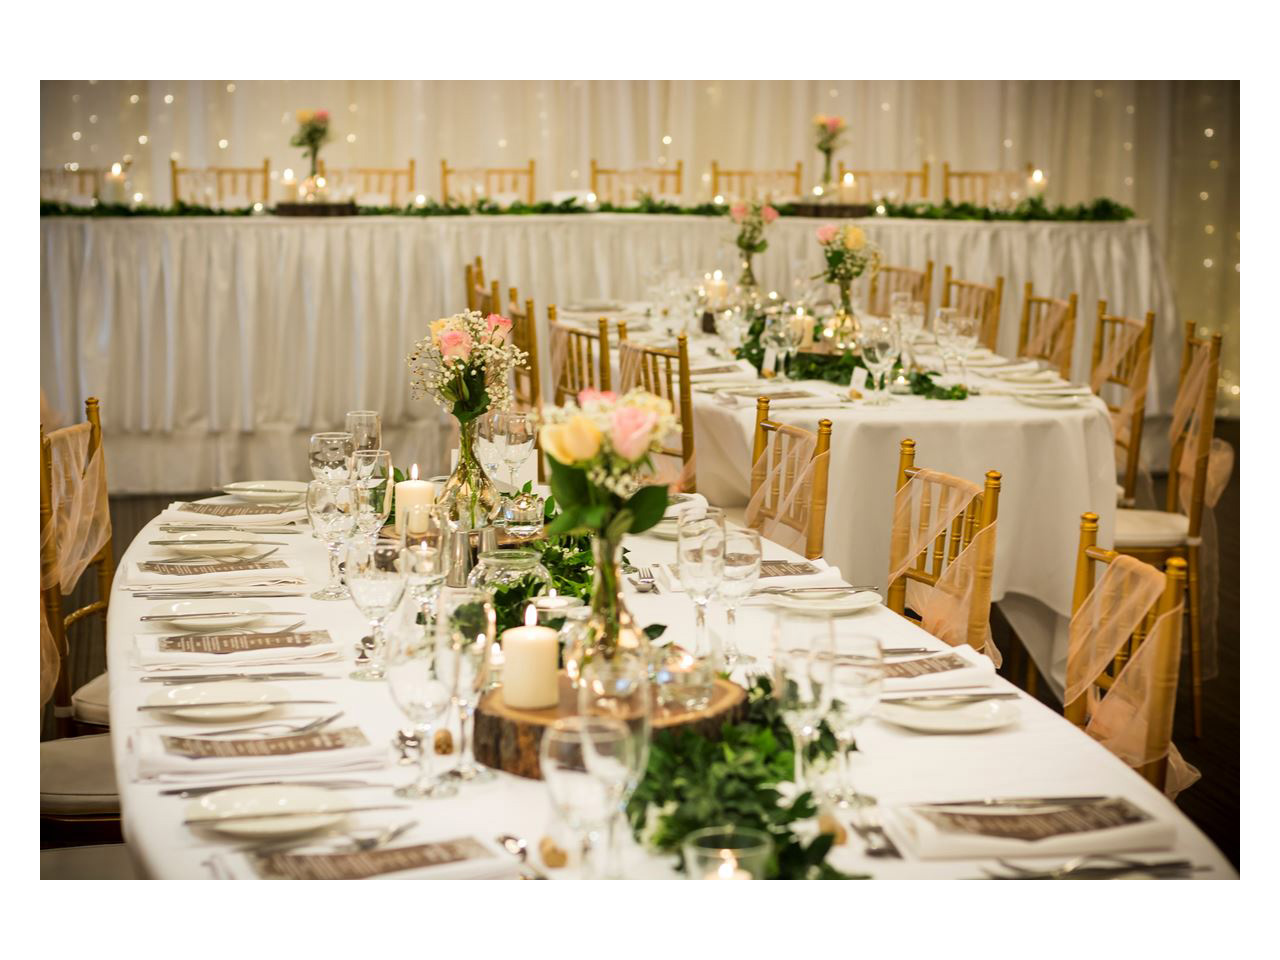 Room set for wedding reception with white and pink tables and wooden chairs